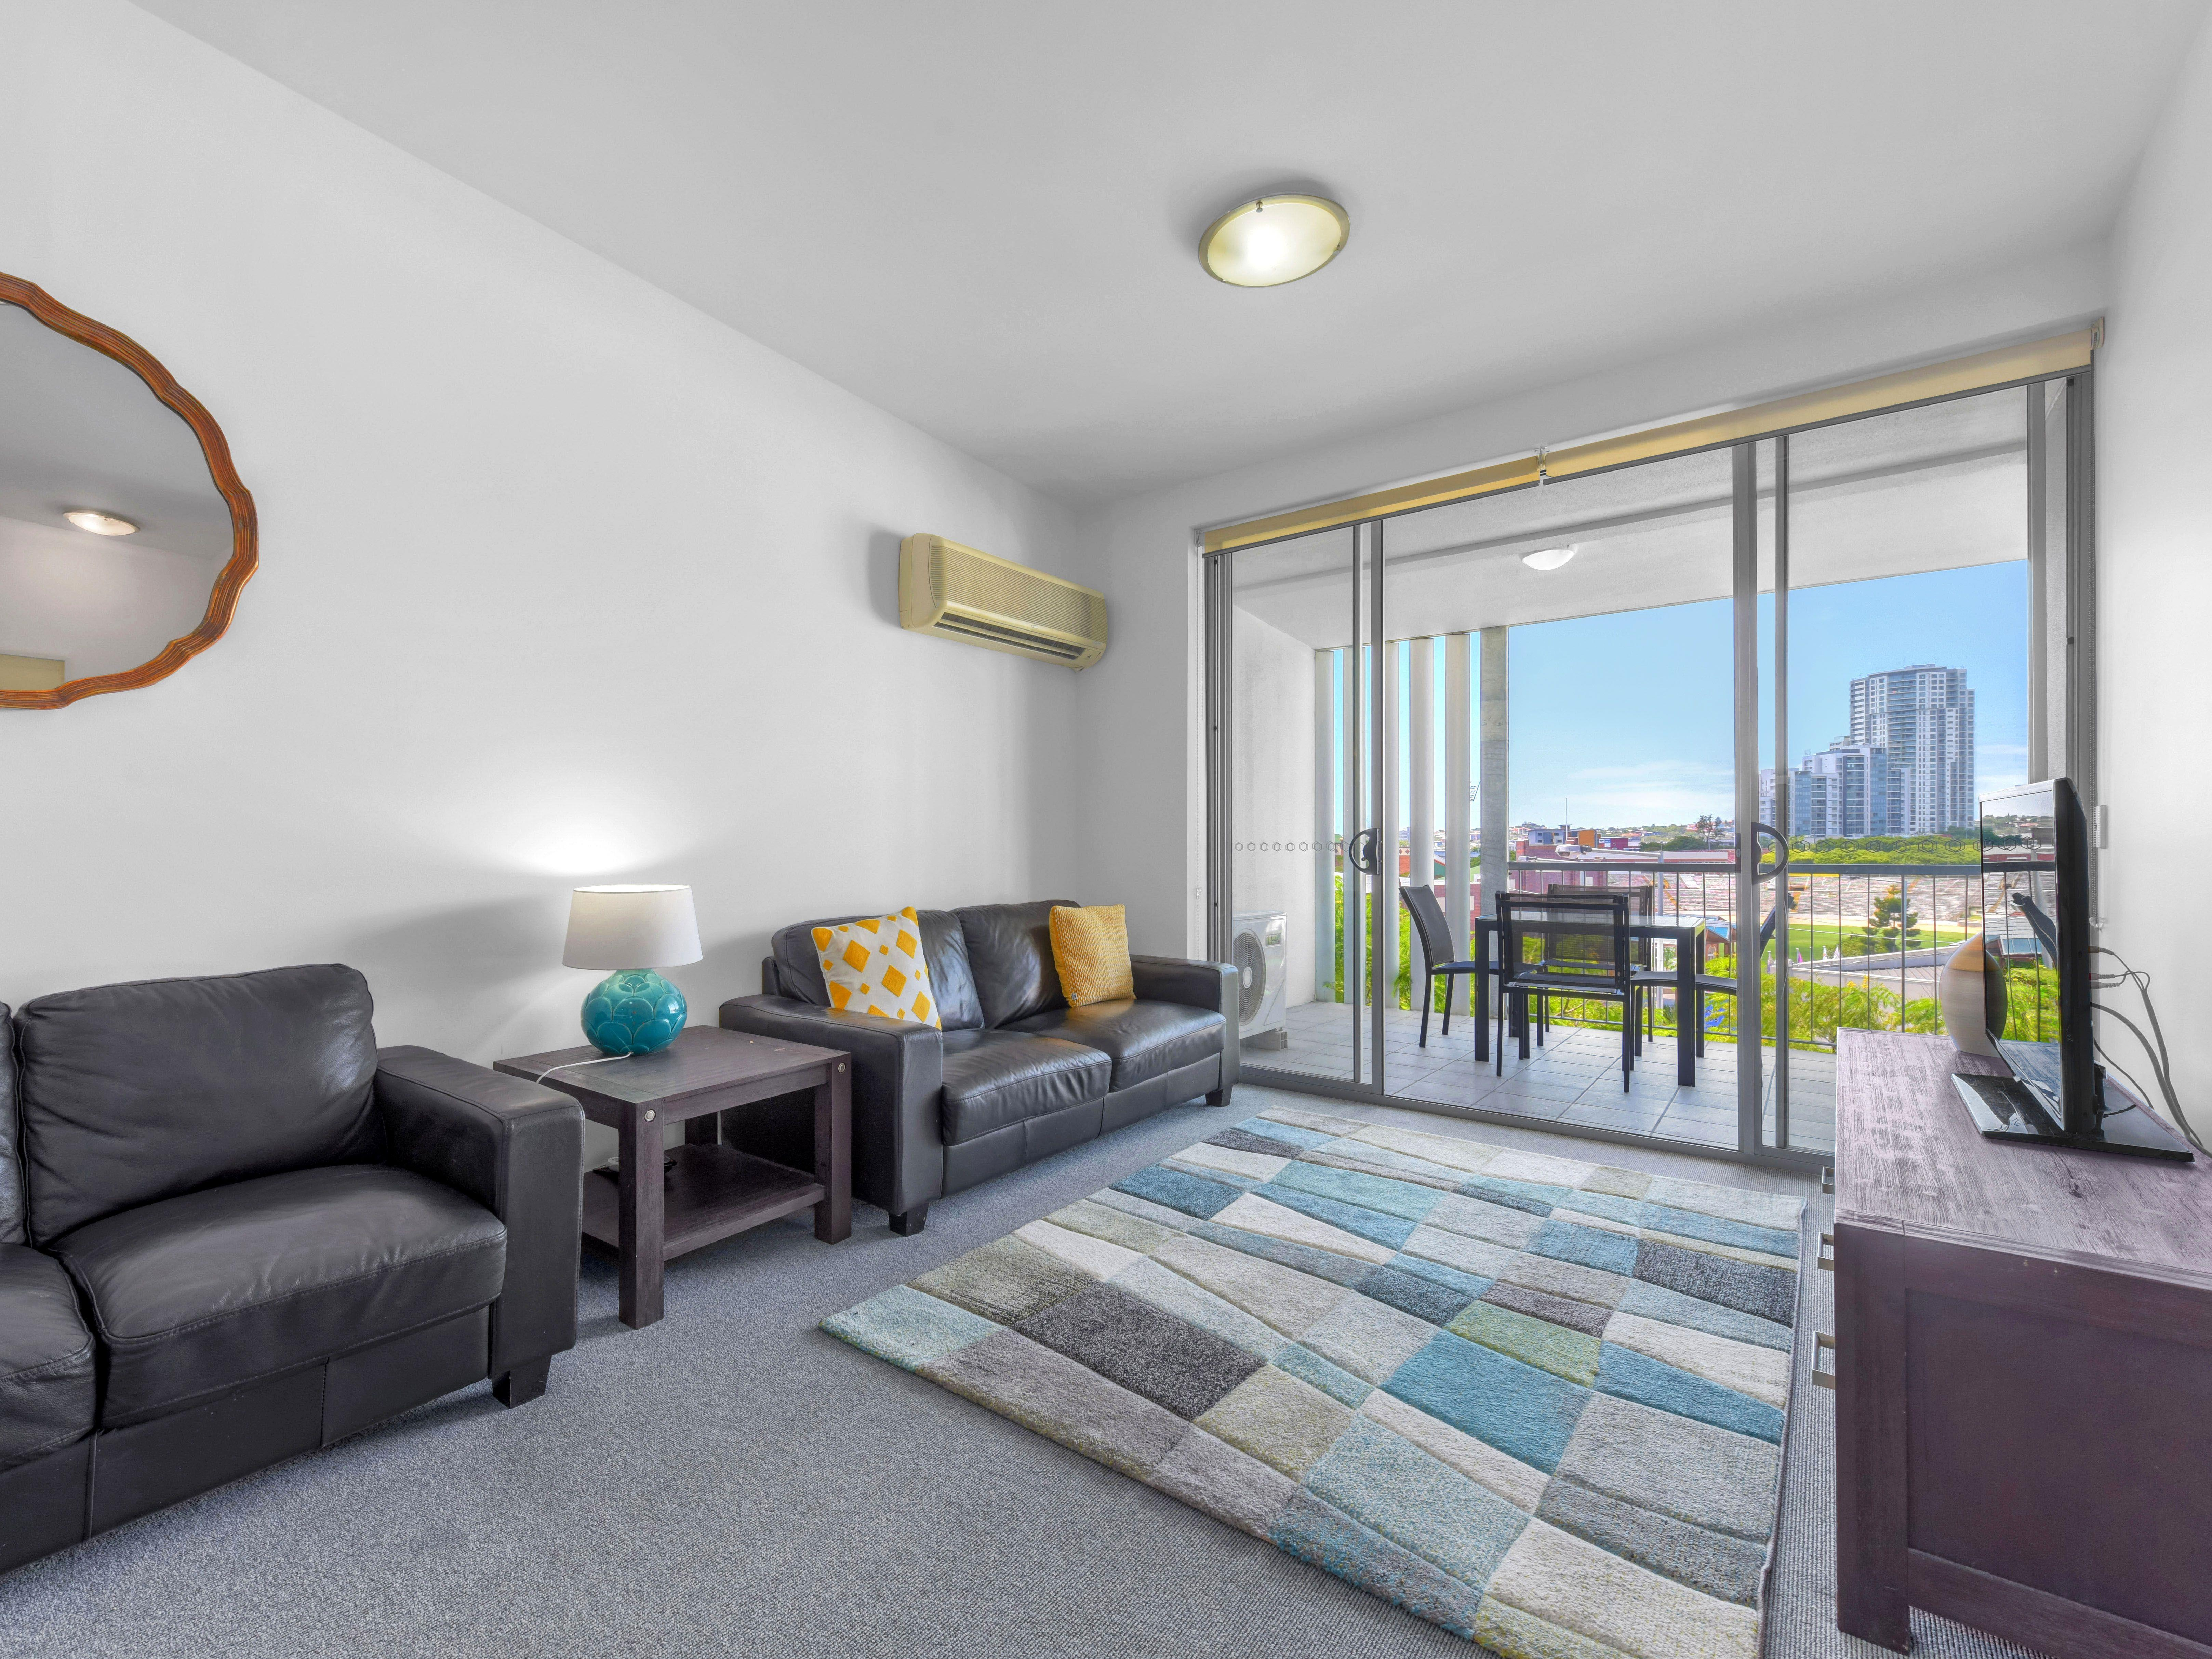 308/587 Gregory Terrace, Fortitude Valley, QLD 4006 Sale & Rental